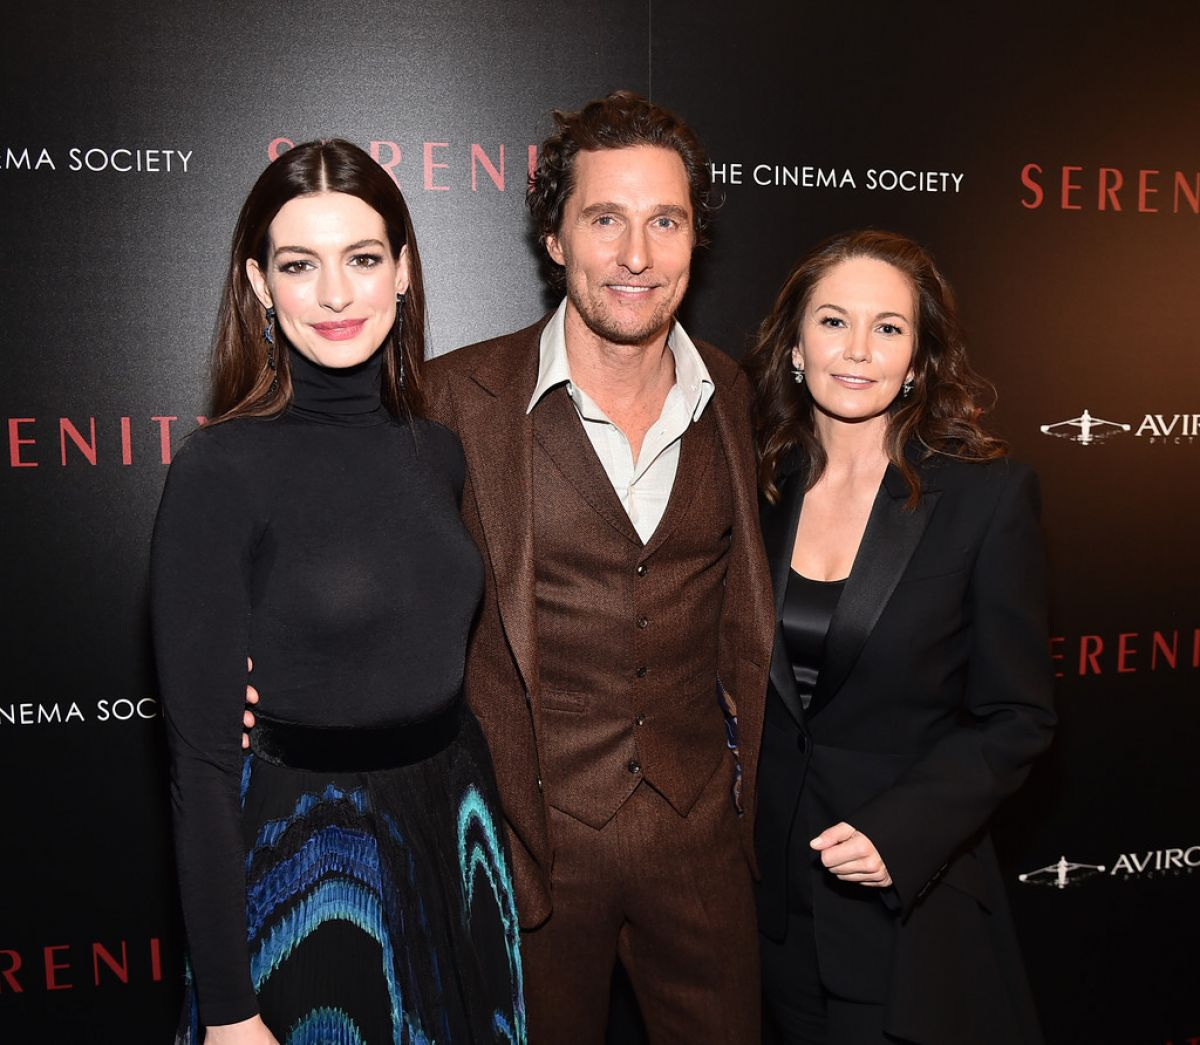 ANNE HATHAWAY And DIANE LANE At Serenity Screening In New